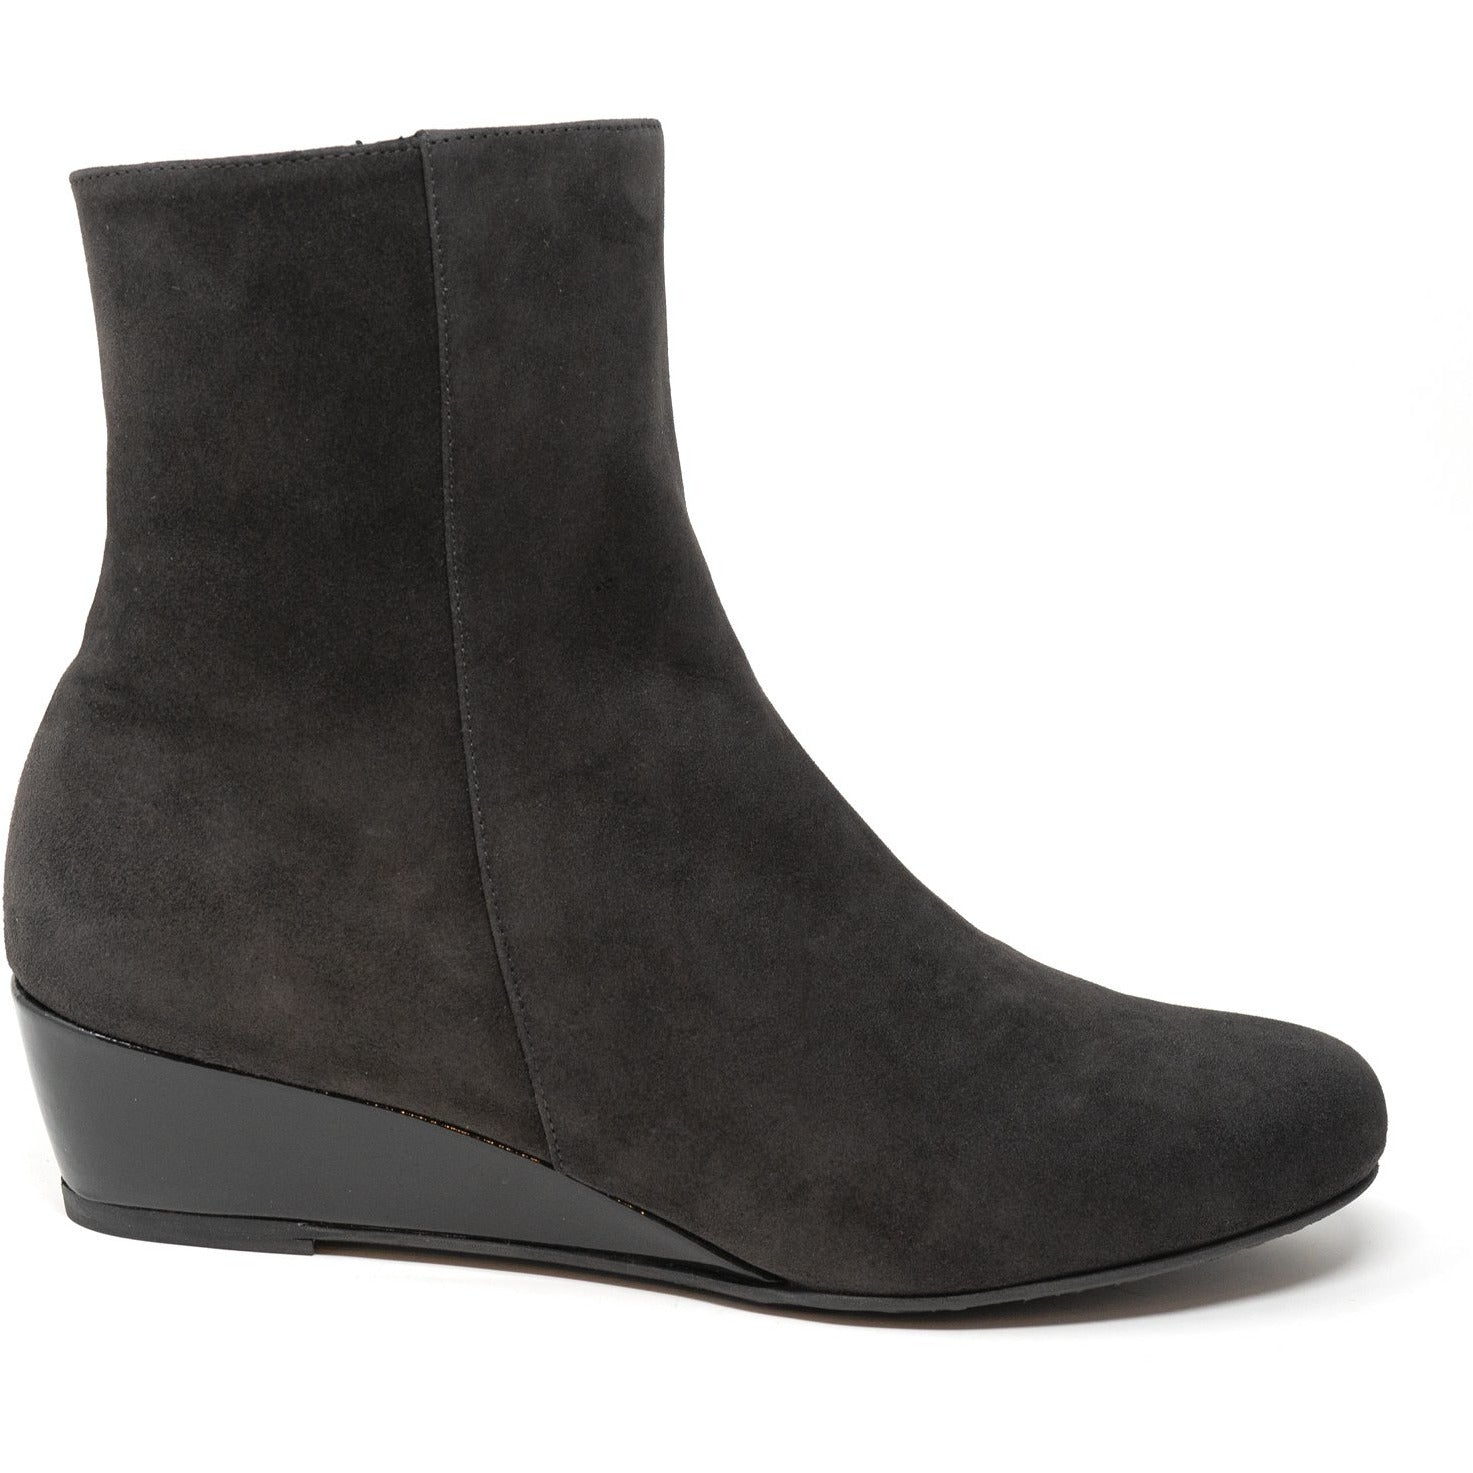 Women Ankle Wedge Boots in Brown - Jennifer Tattanelli